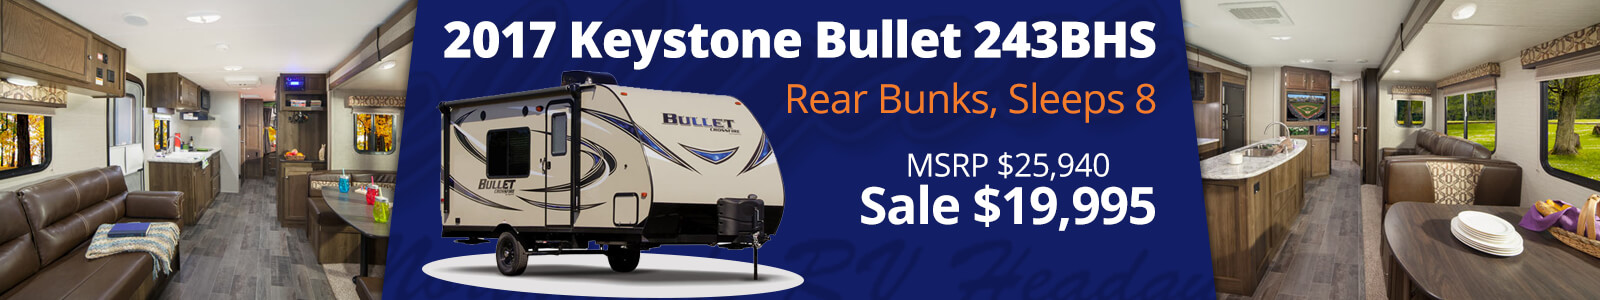 Keystone Bullet 243BHS Travel Trailer